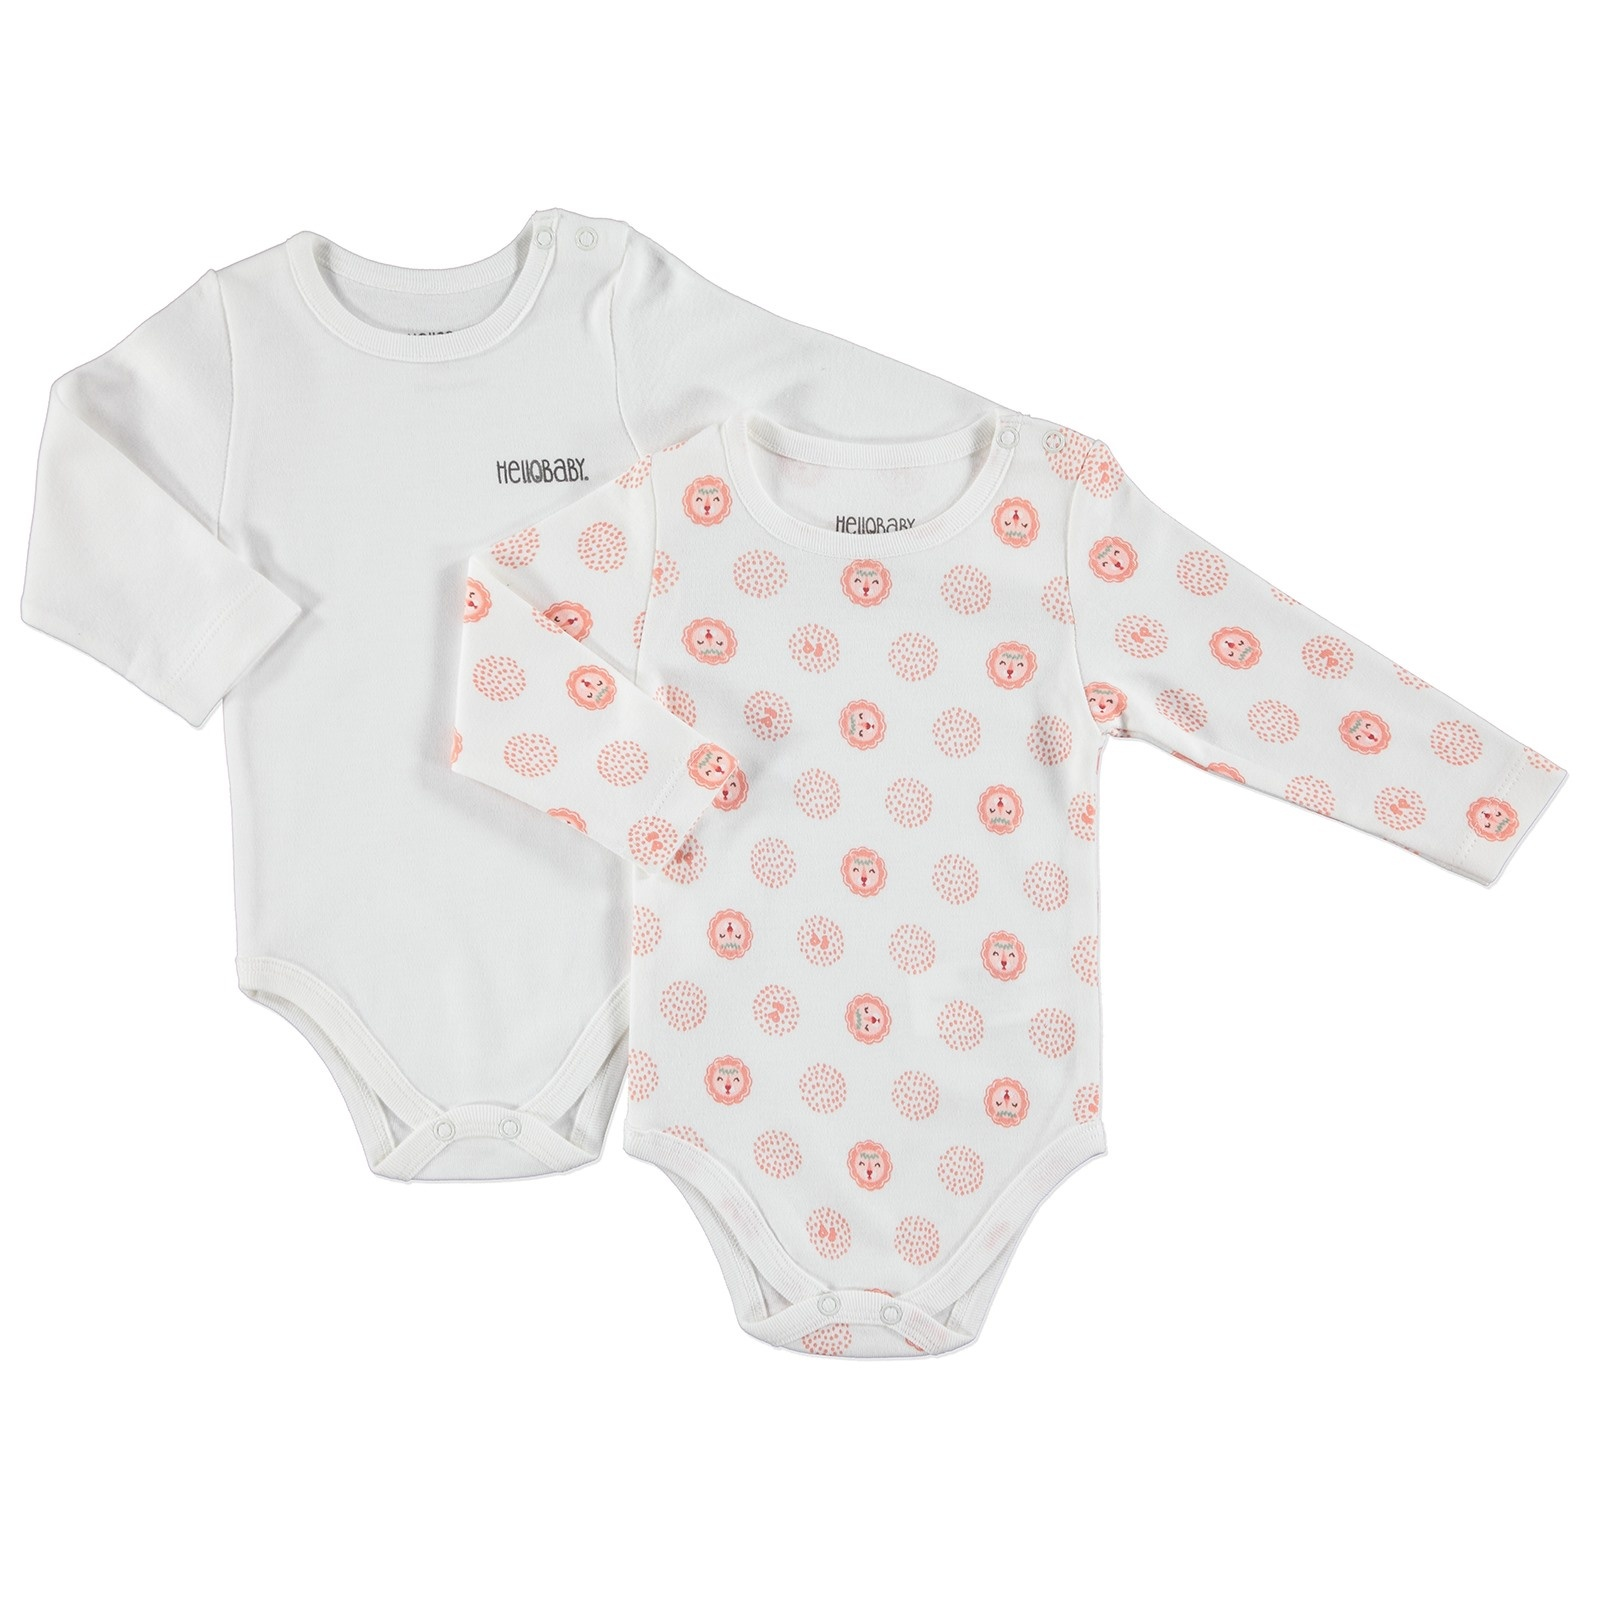 Ebebek HelloBaby Printed Interlock Long Sleeve Snaps Neck Bodysuits 2 Pcs